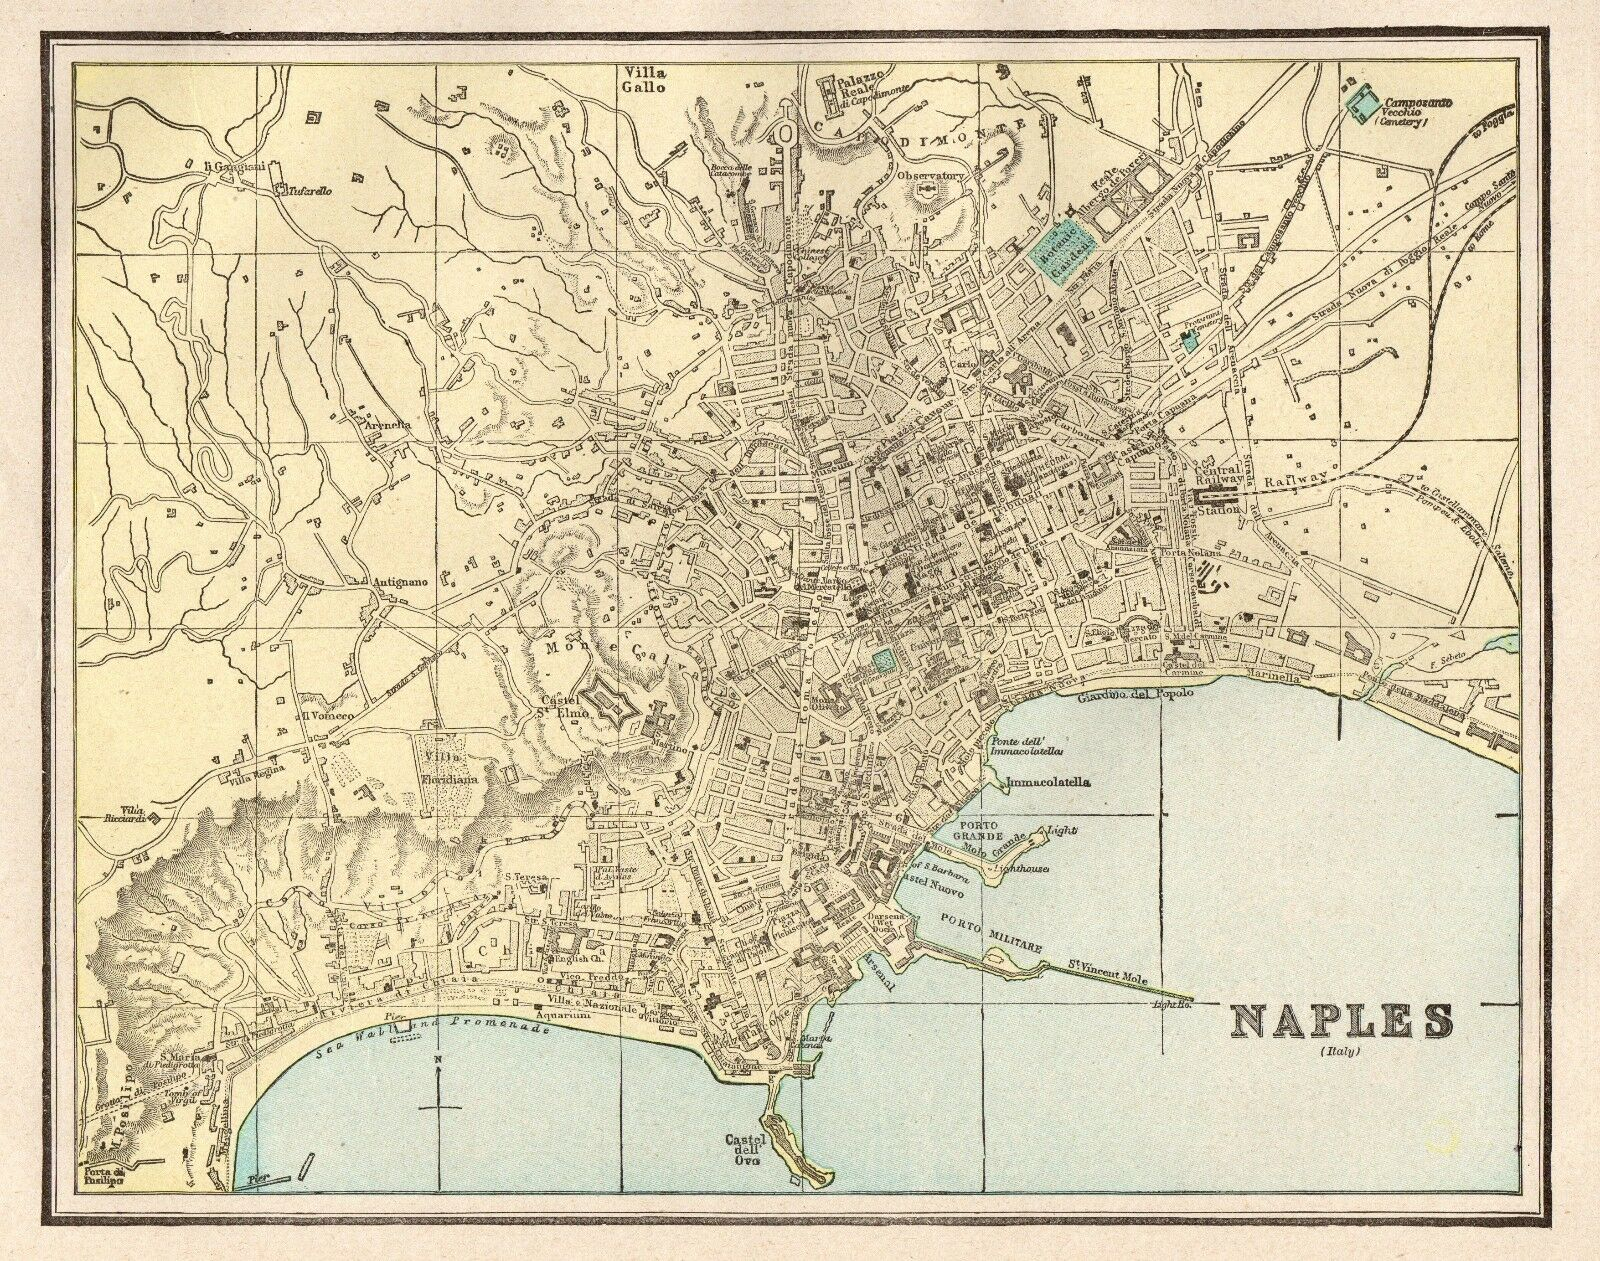 ANTIQUE NAPLES ITALY MAP 1900 Vintage Collectible Map Of Naples ...